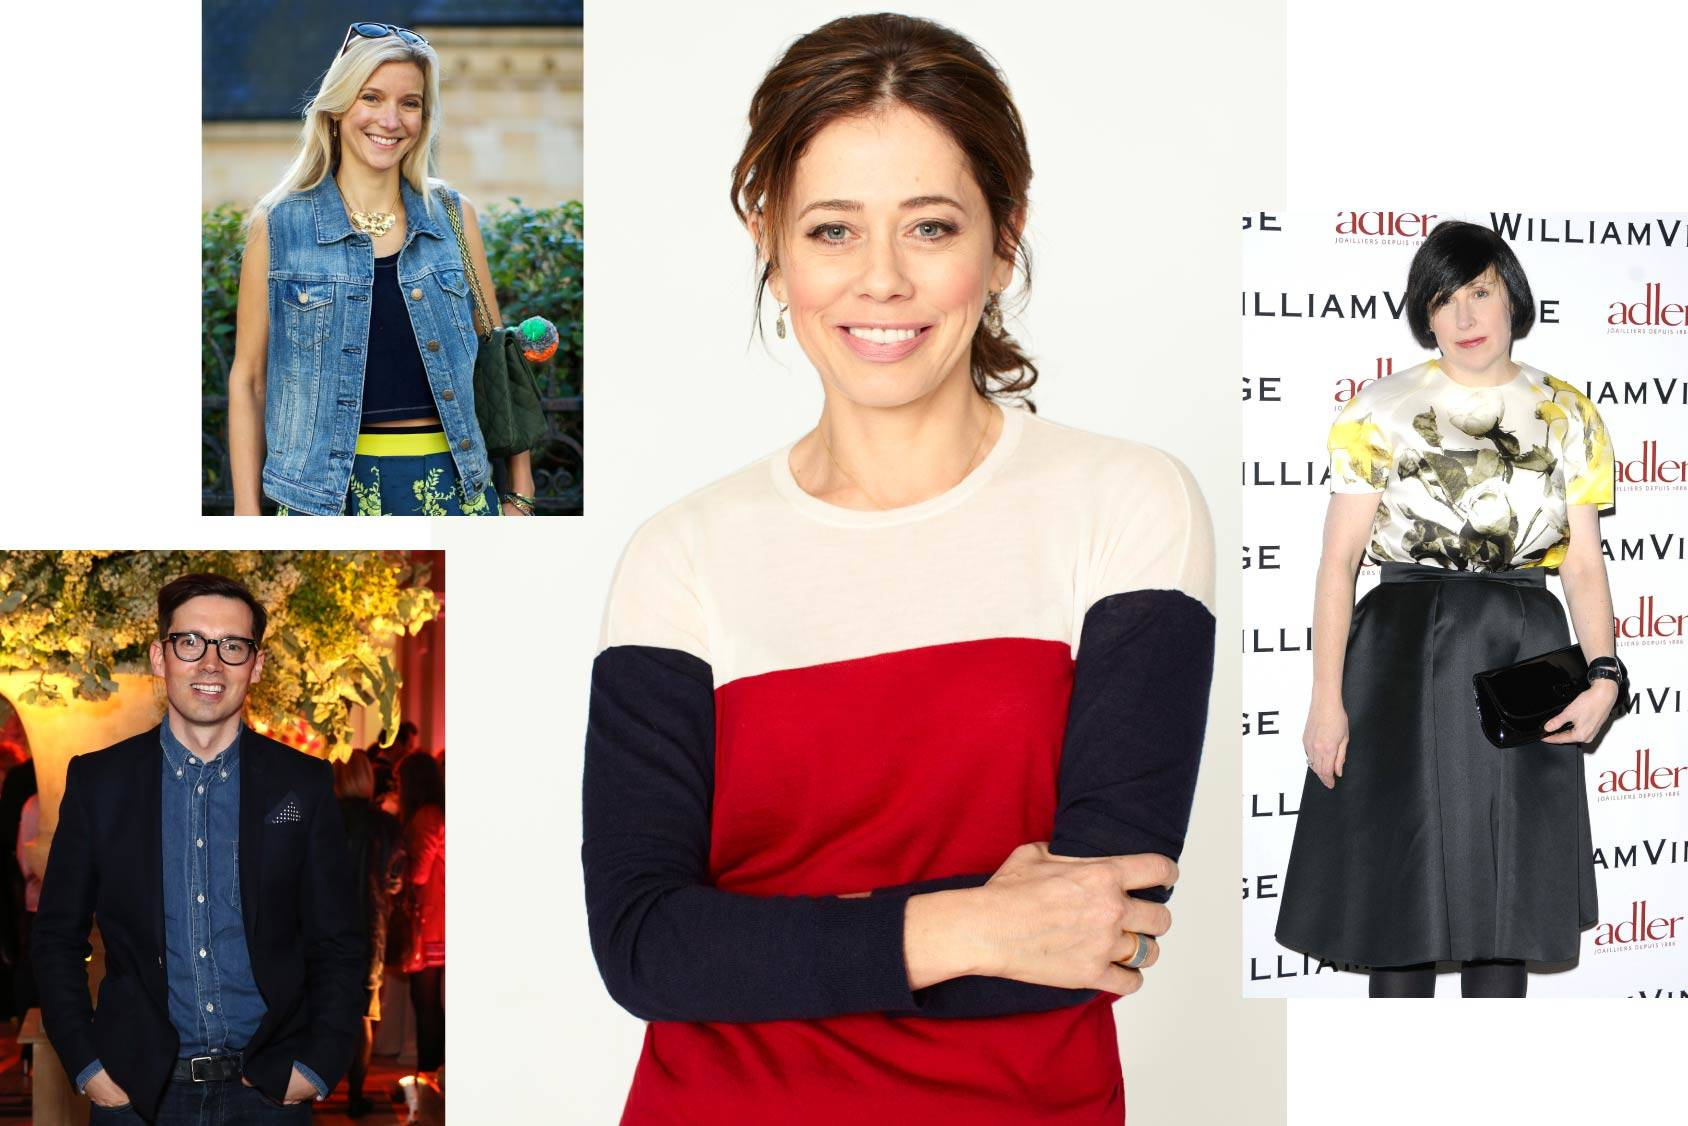 Lisa Armstrong follows Calgary Avansino, Erdem Moralıoğlu and Alice Rawsthorn, All Over Press.